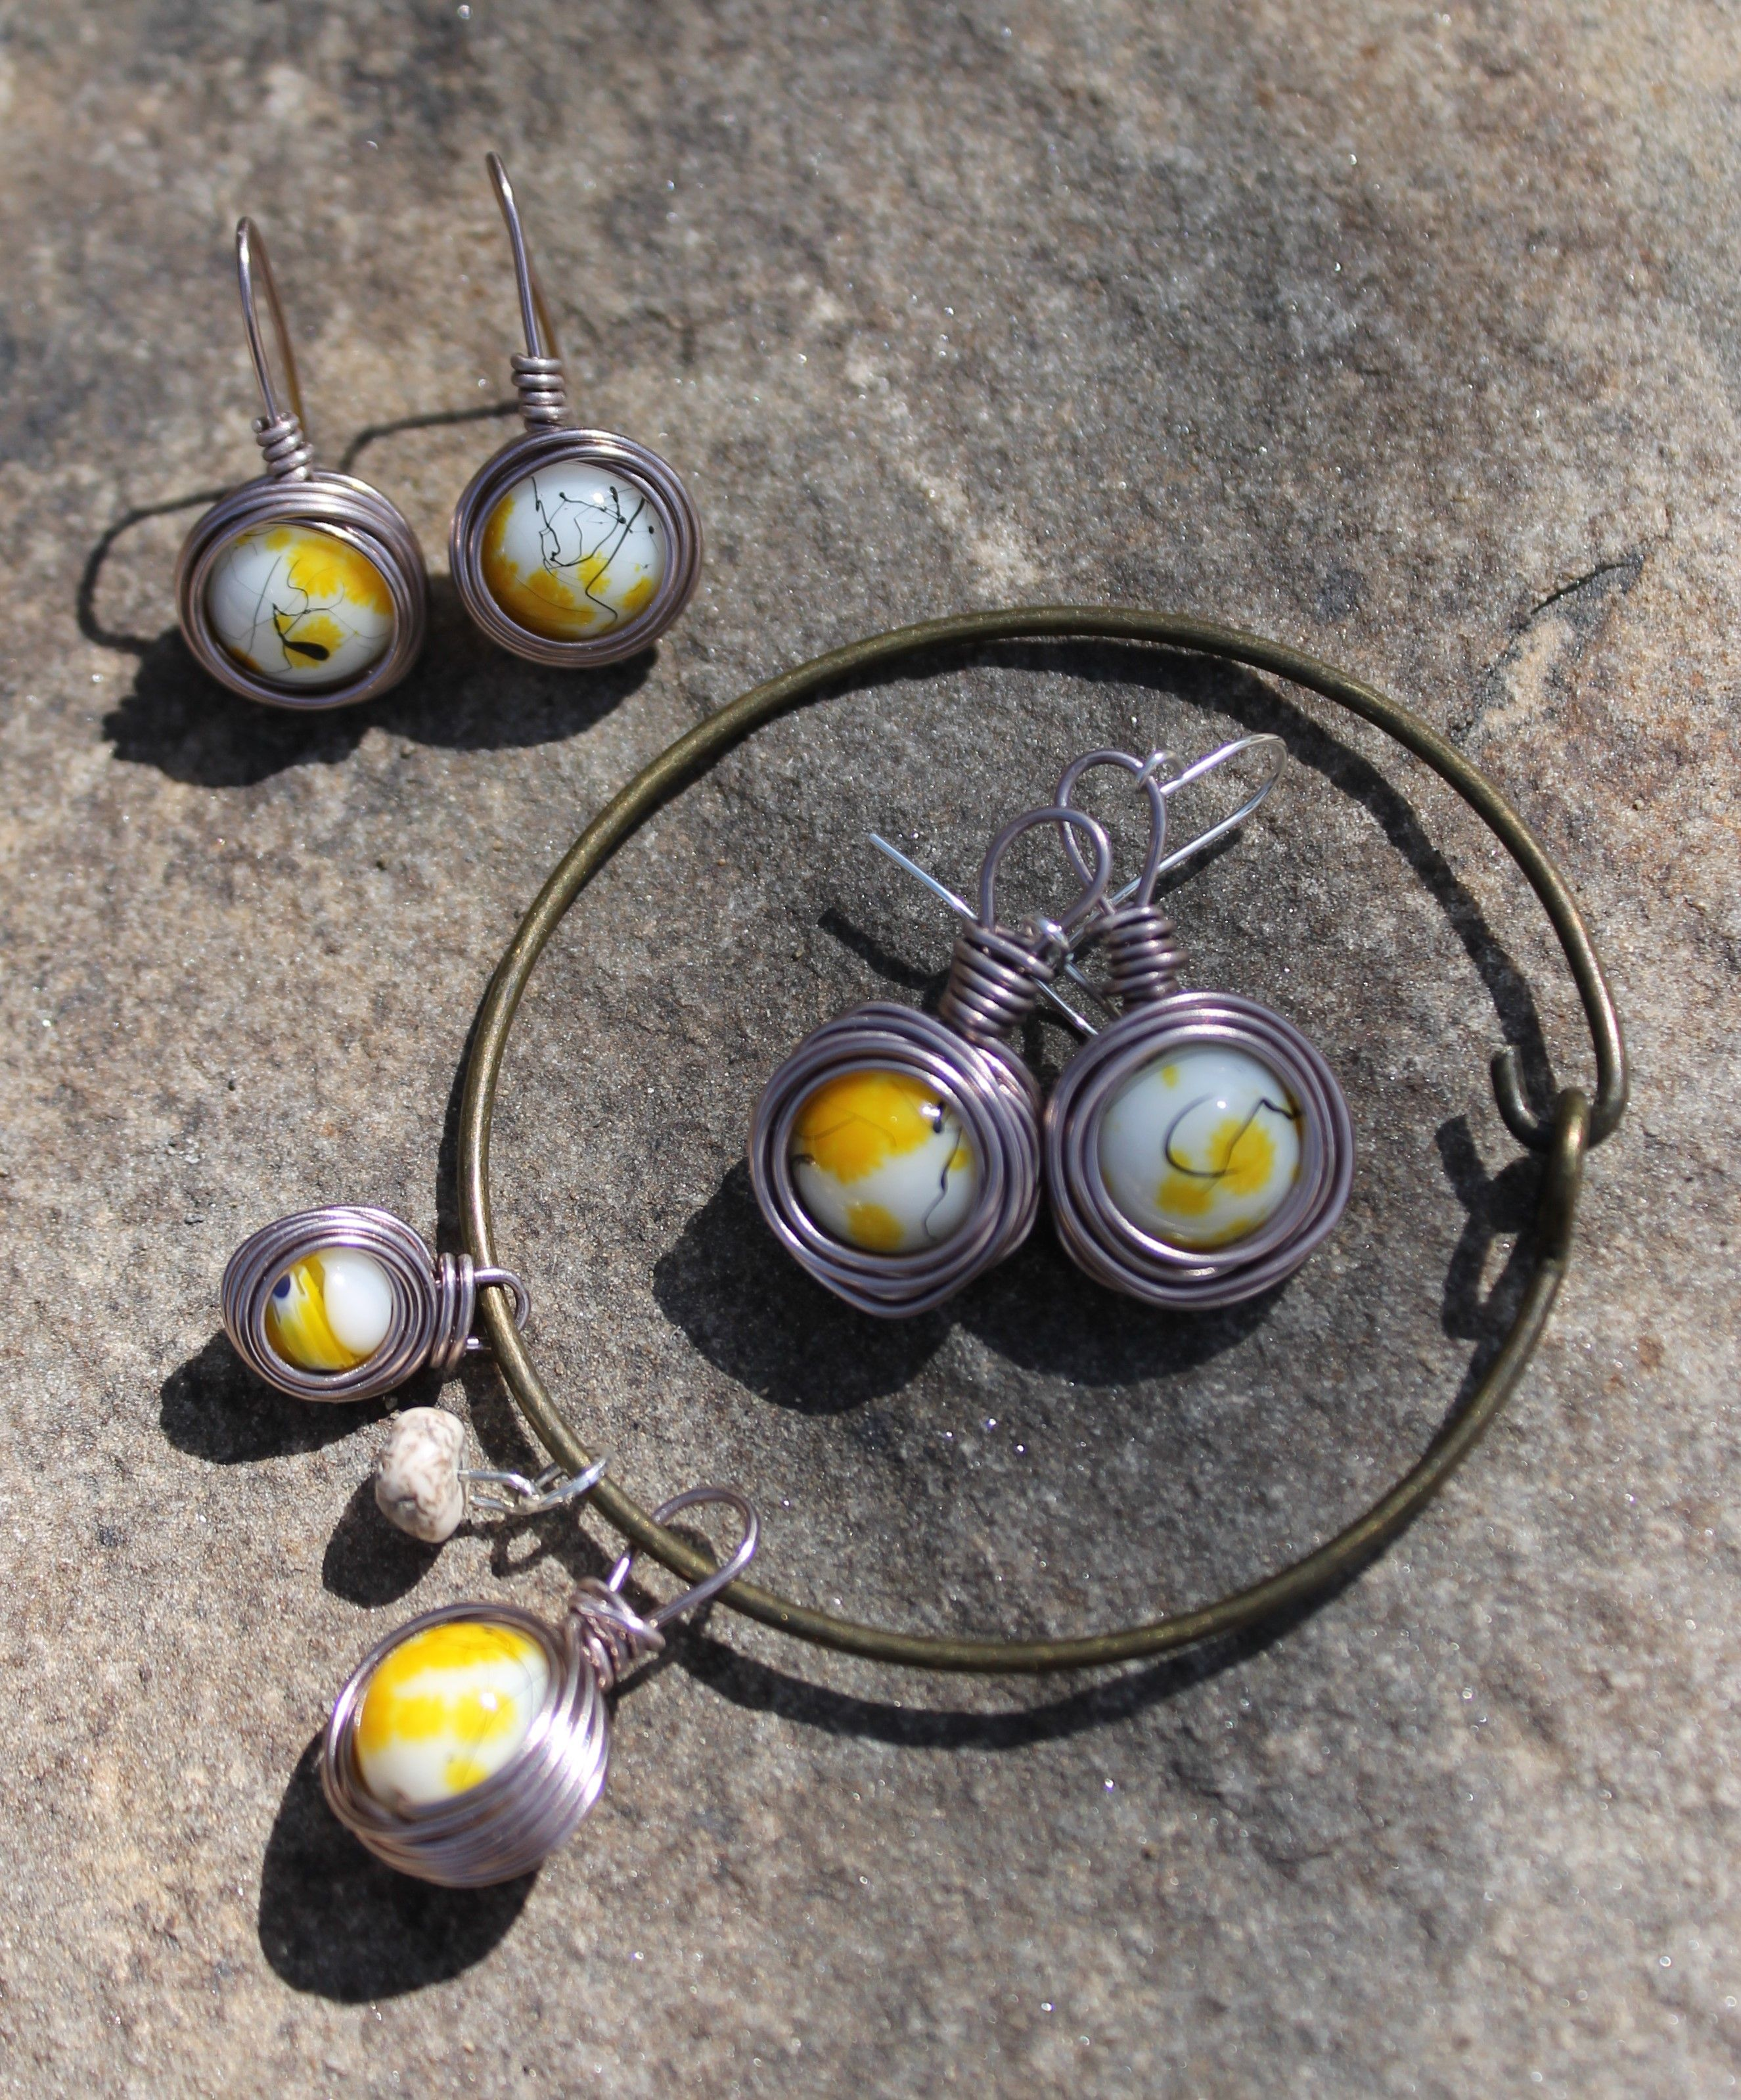 Pin by vickie Lidholm gaither on Jewelry   Pinterest   Wire wrapping ...